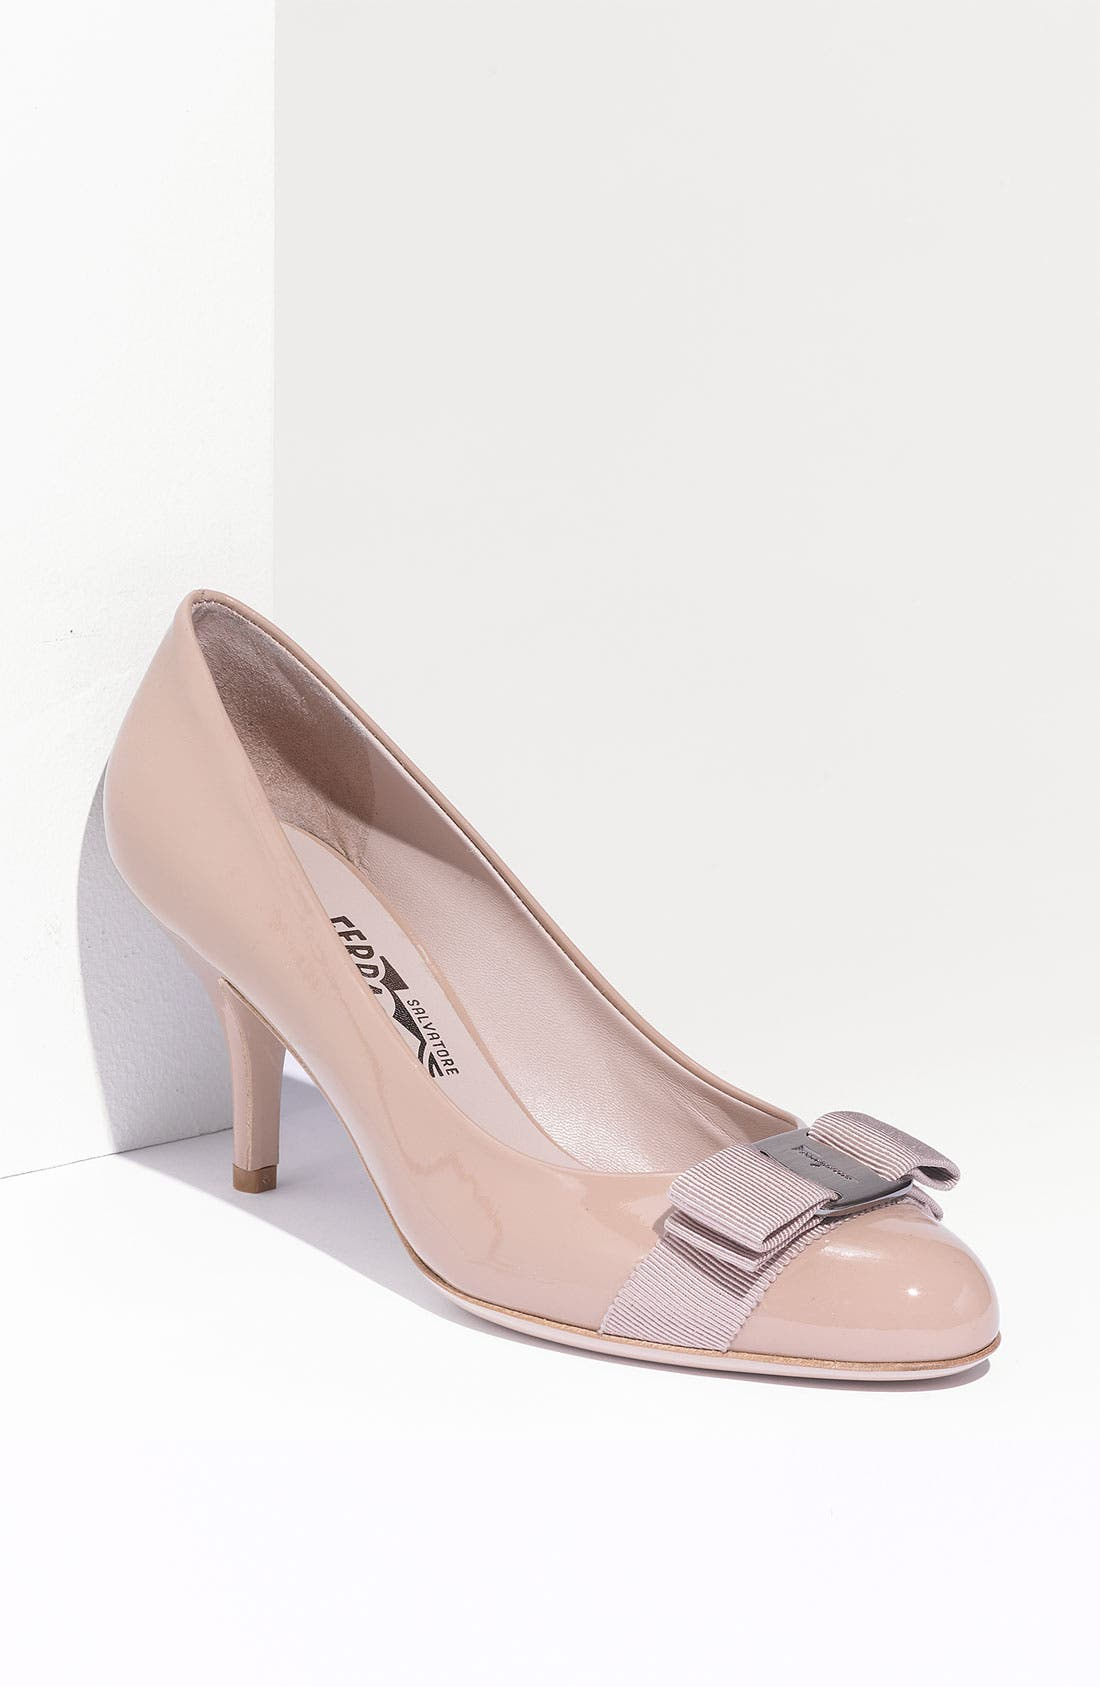 Main Image - Salvatore Ferragamo Carla Pump (Women)